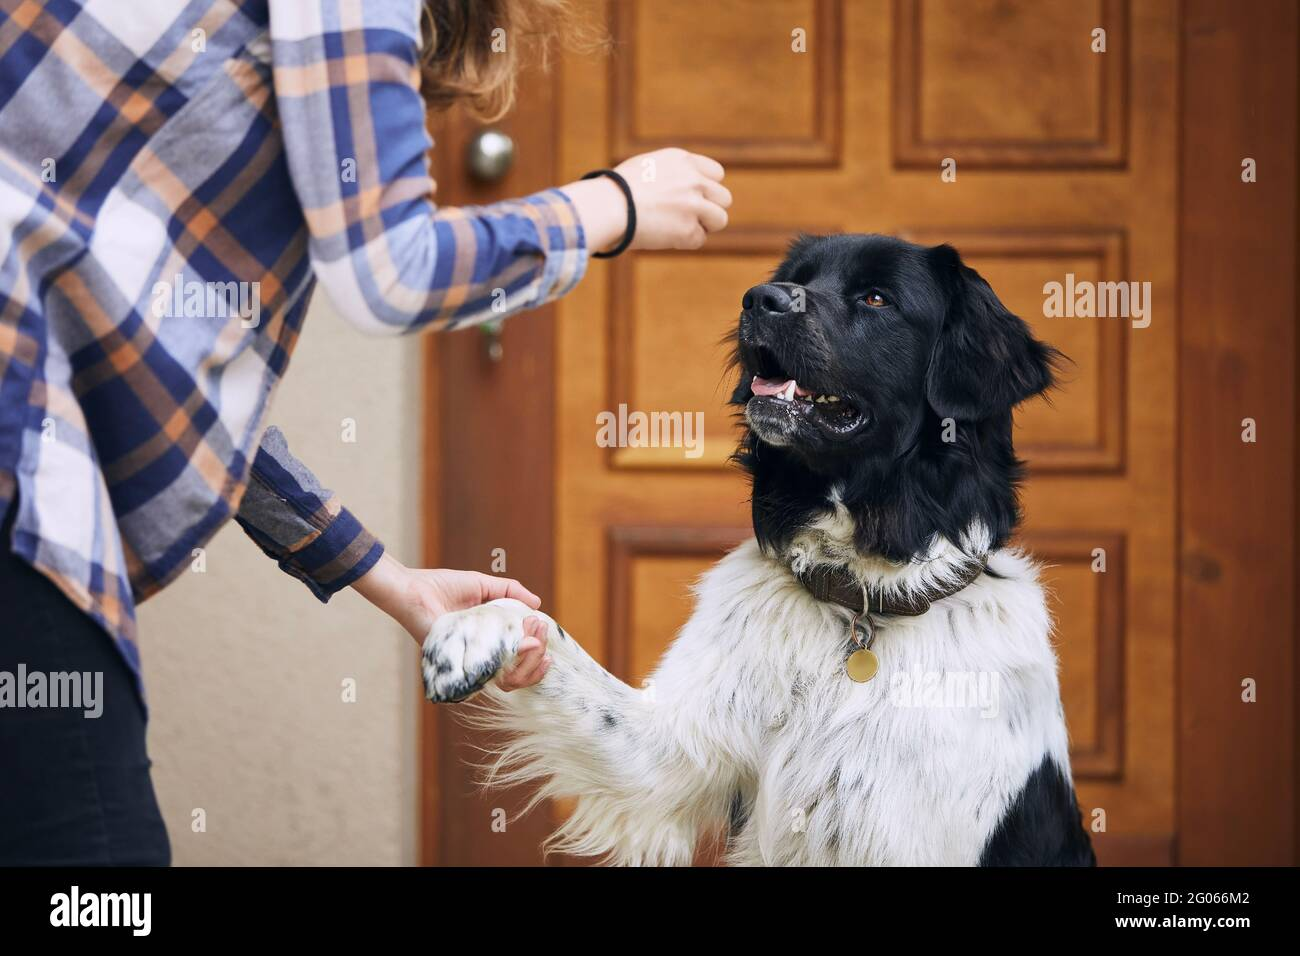 Dog (Czech mountain dog) giving paw teenage girl during obedience training against door of house. Stock Photo